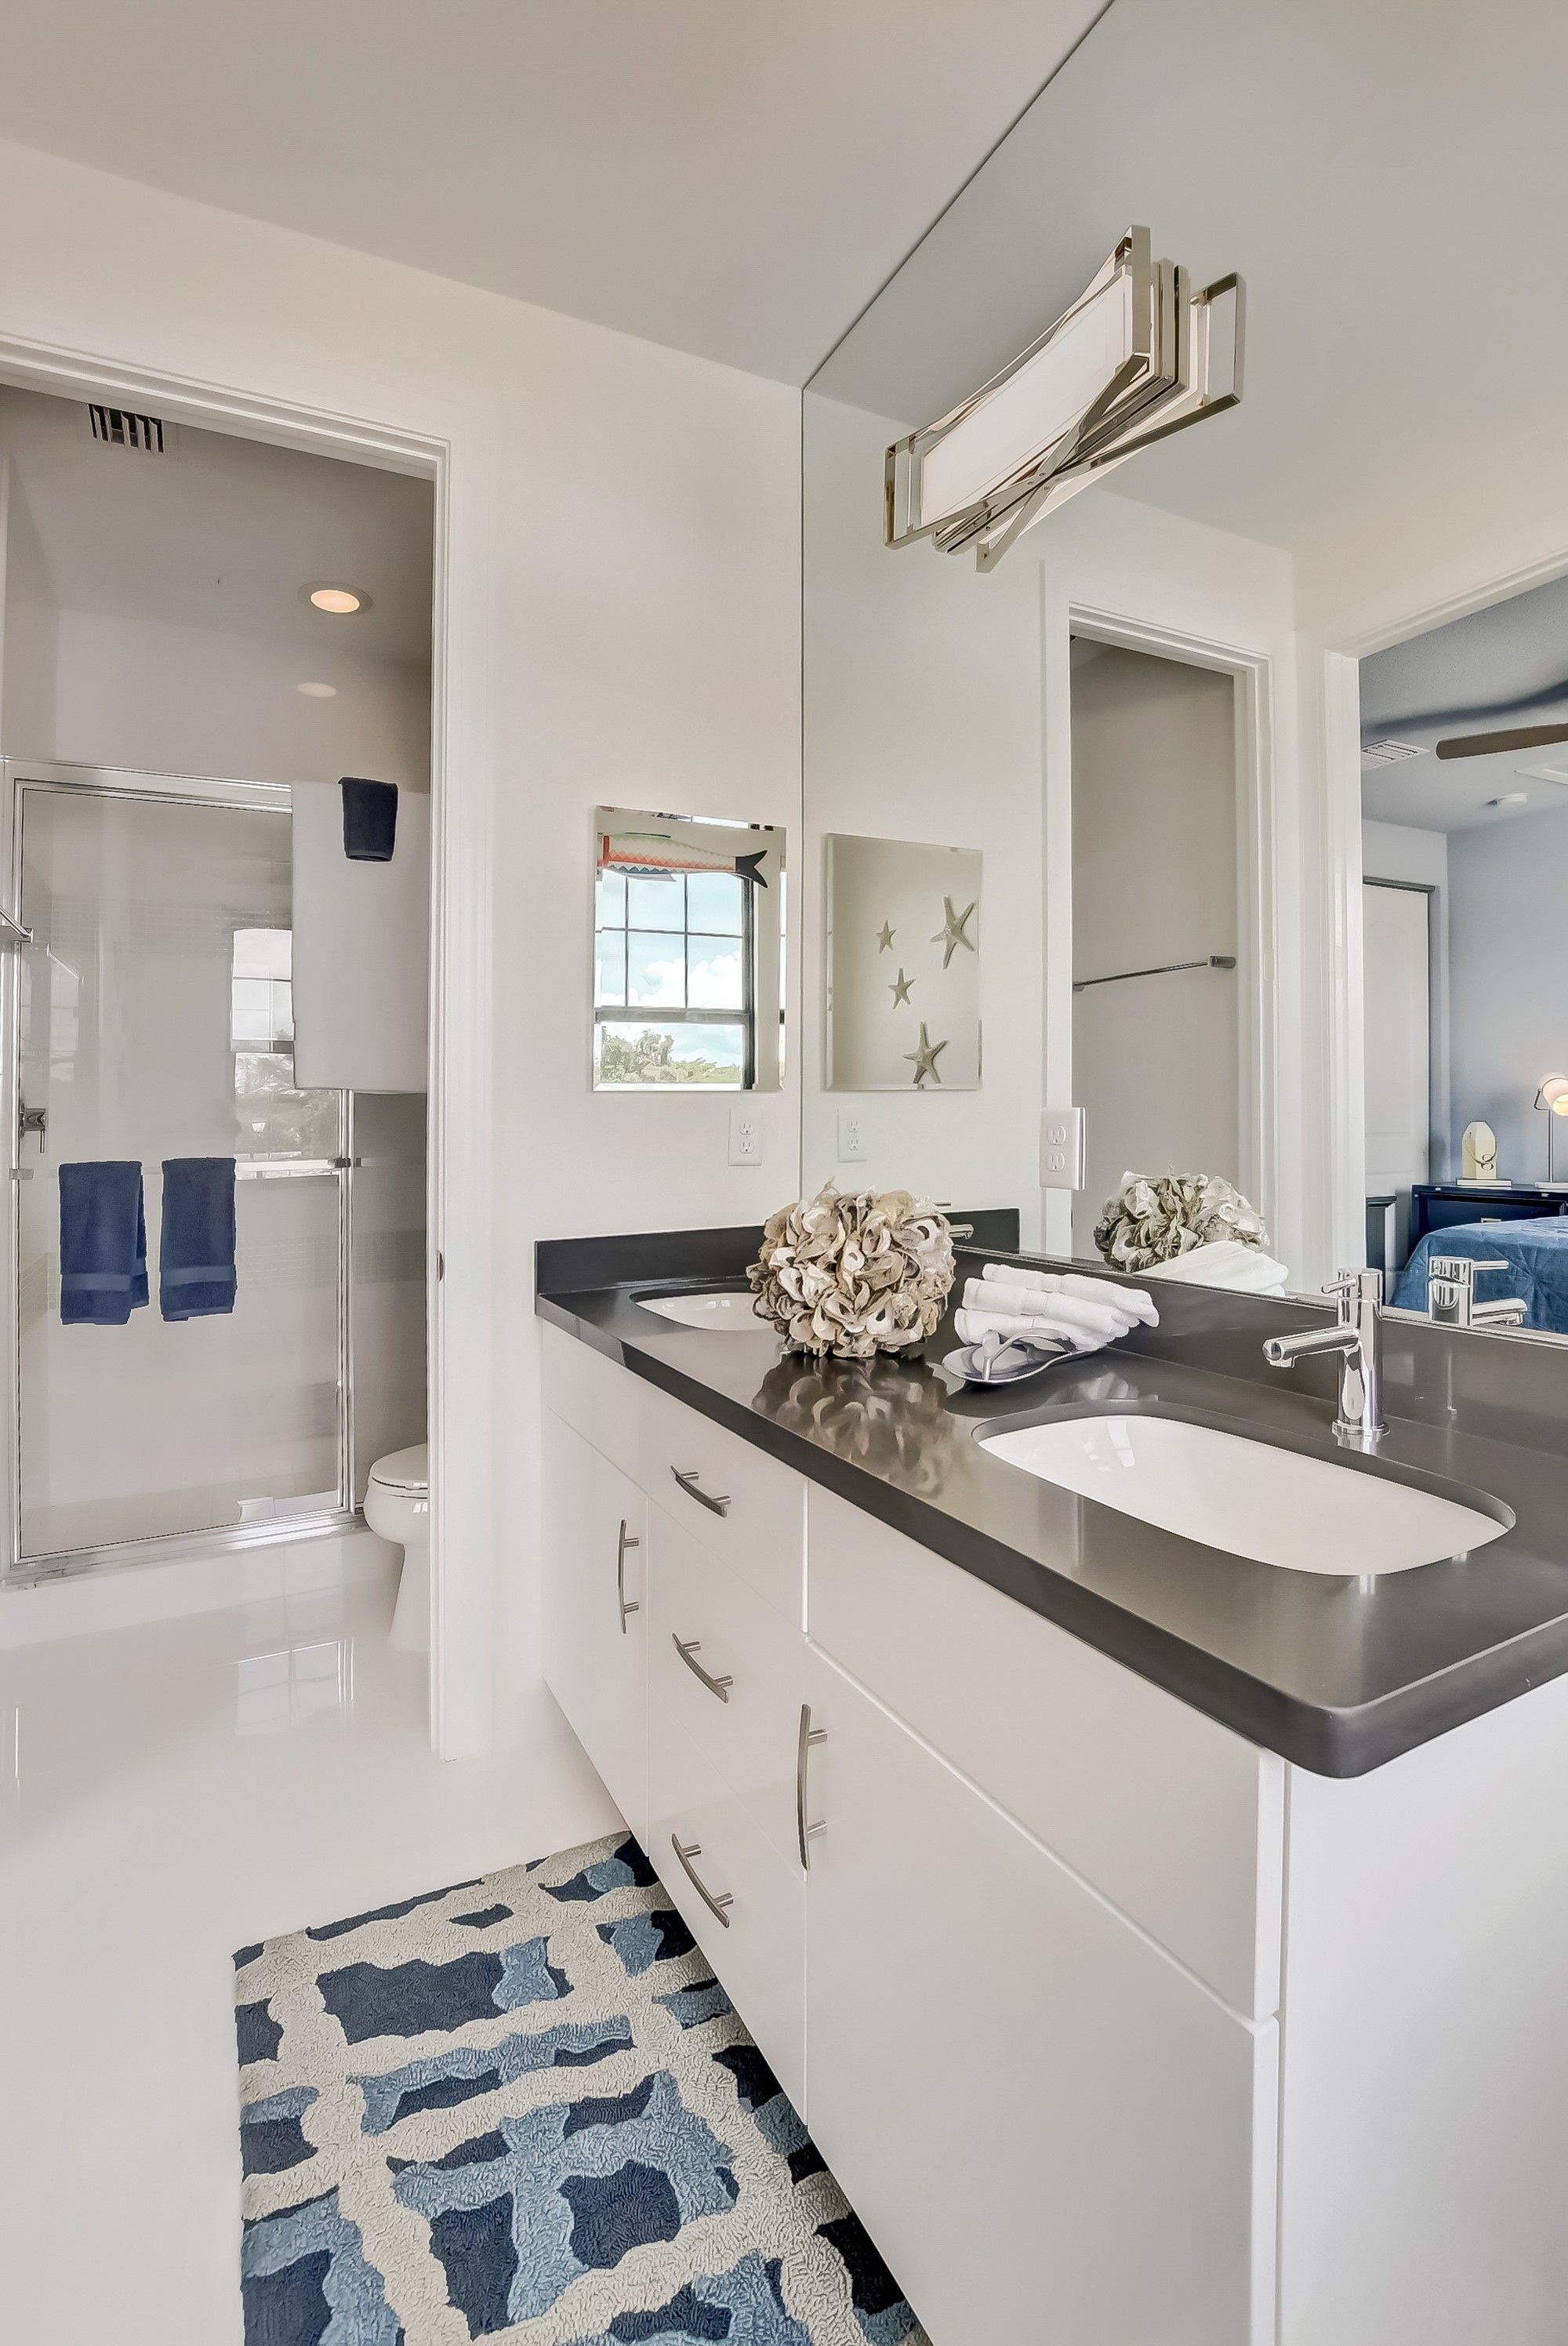 Bathroom featured in the Vitale By K. Hovnanian® Homes in Broward County-Ft. Lauderdale, FL